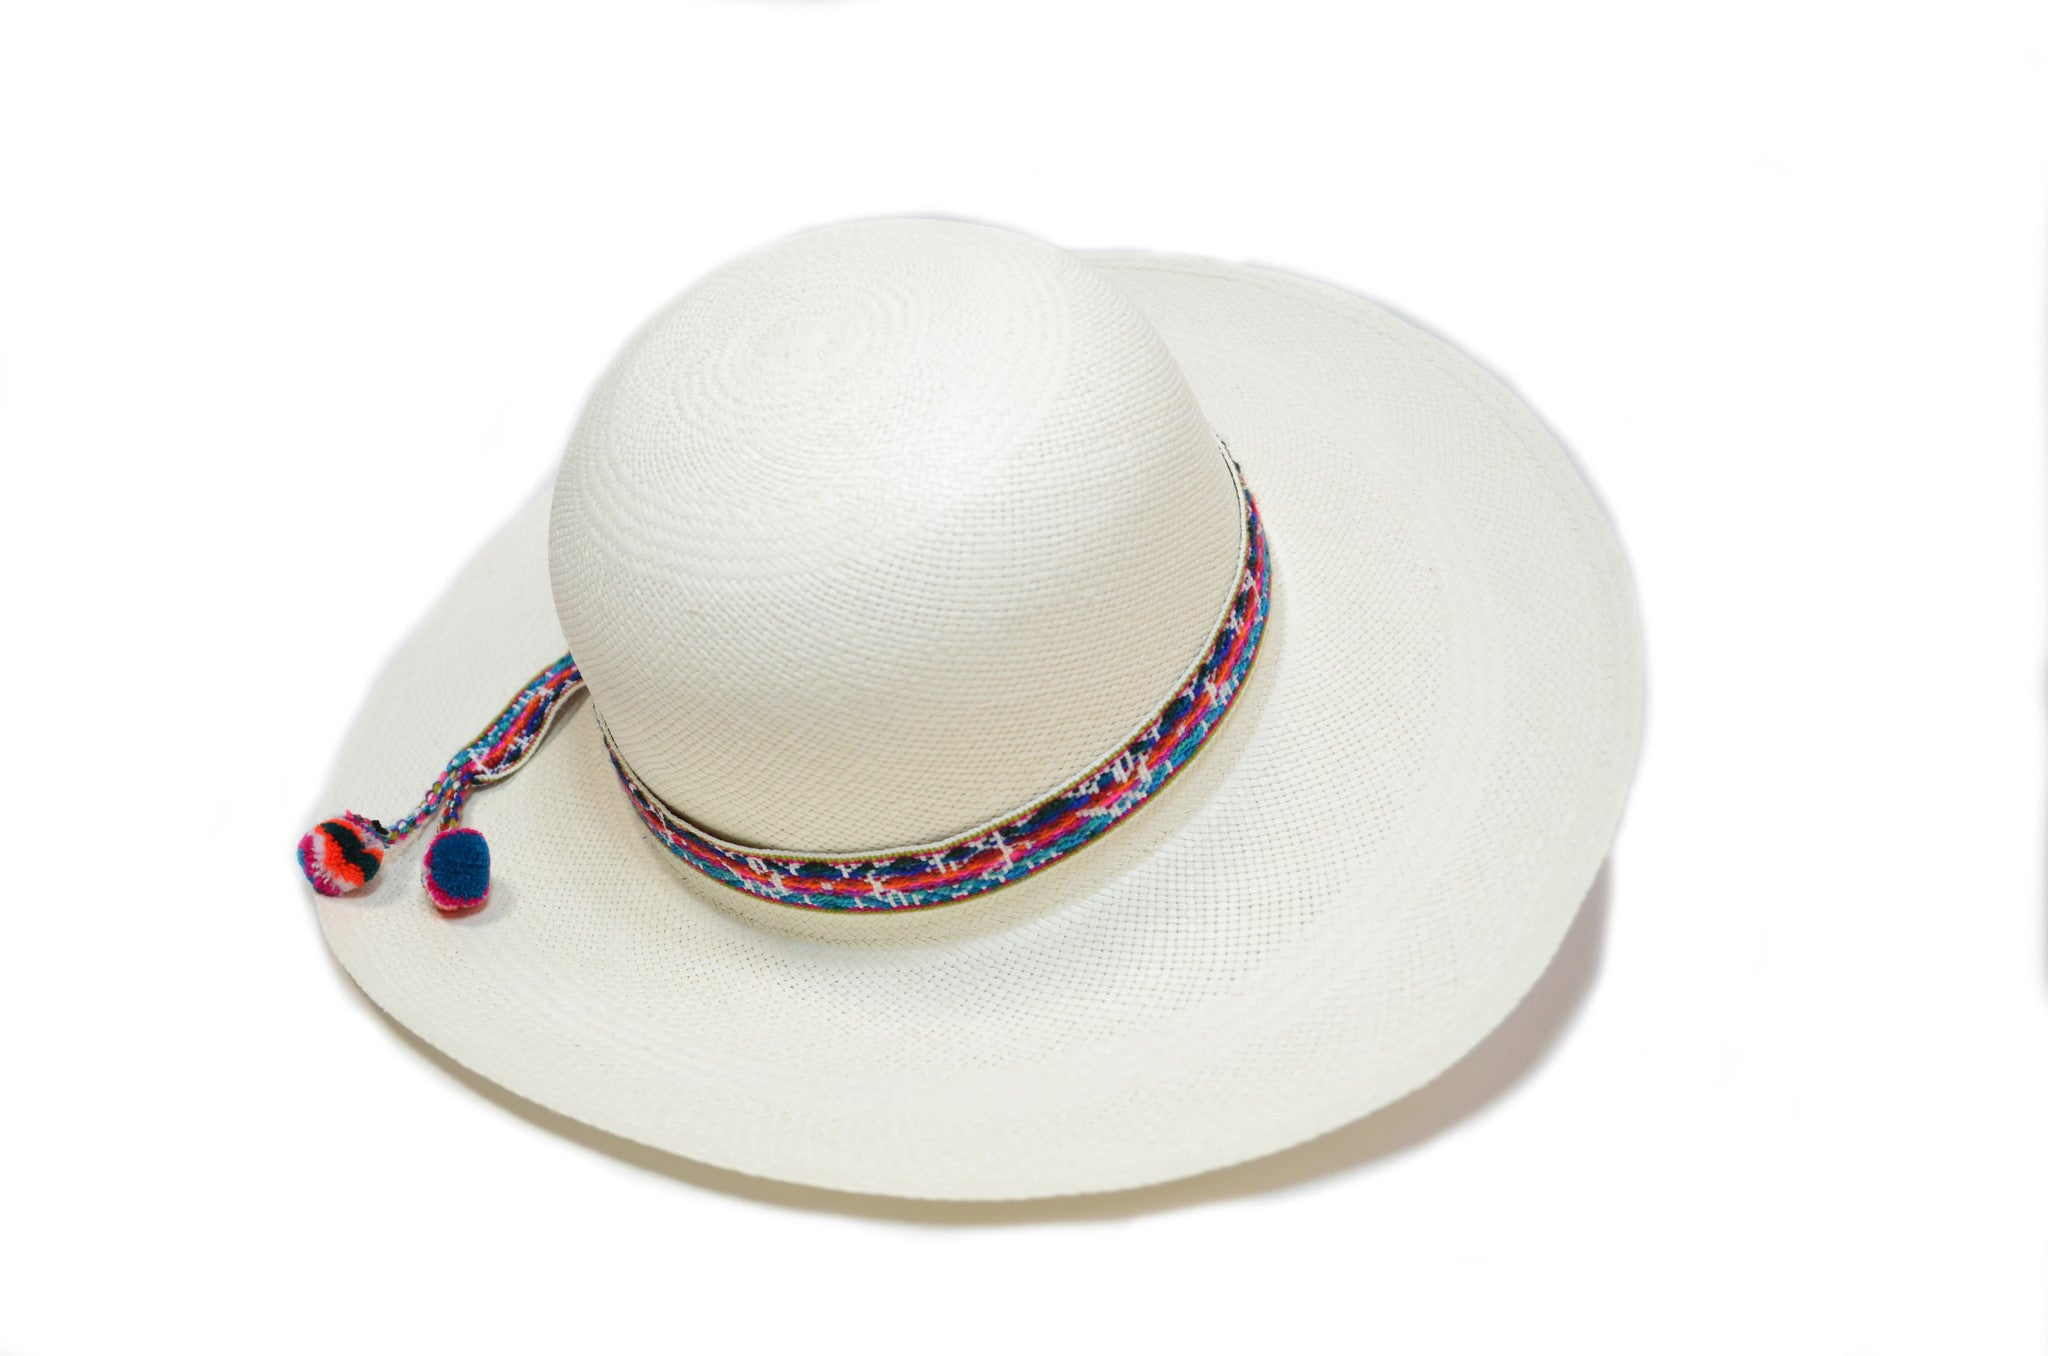 c8376aecc274 TOQUILLA STRAW CLASSY HAT - WIDE BRIM PANAMA HAT (WHITE COLOR) – The  Artisan Project